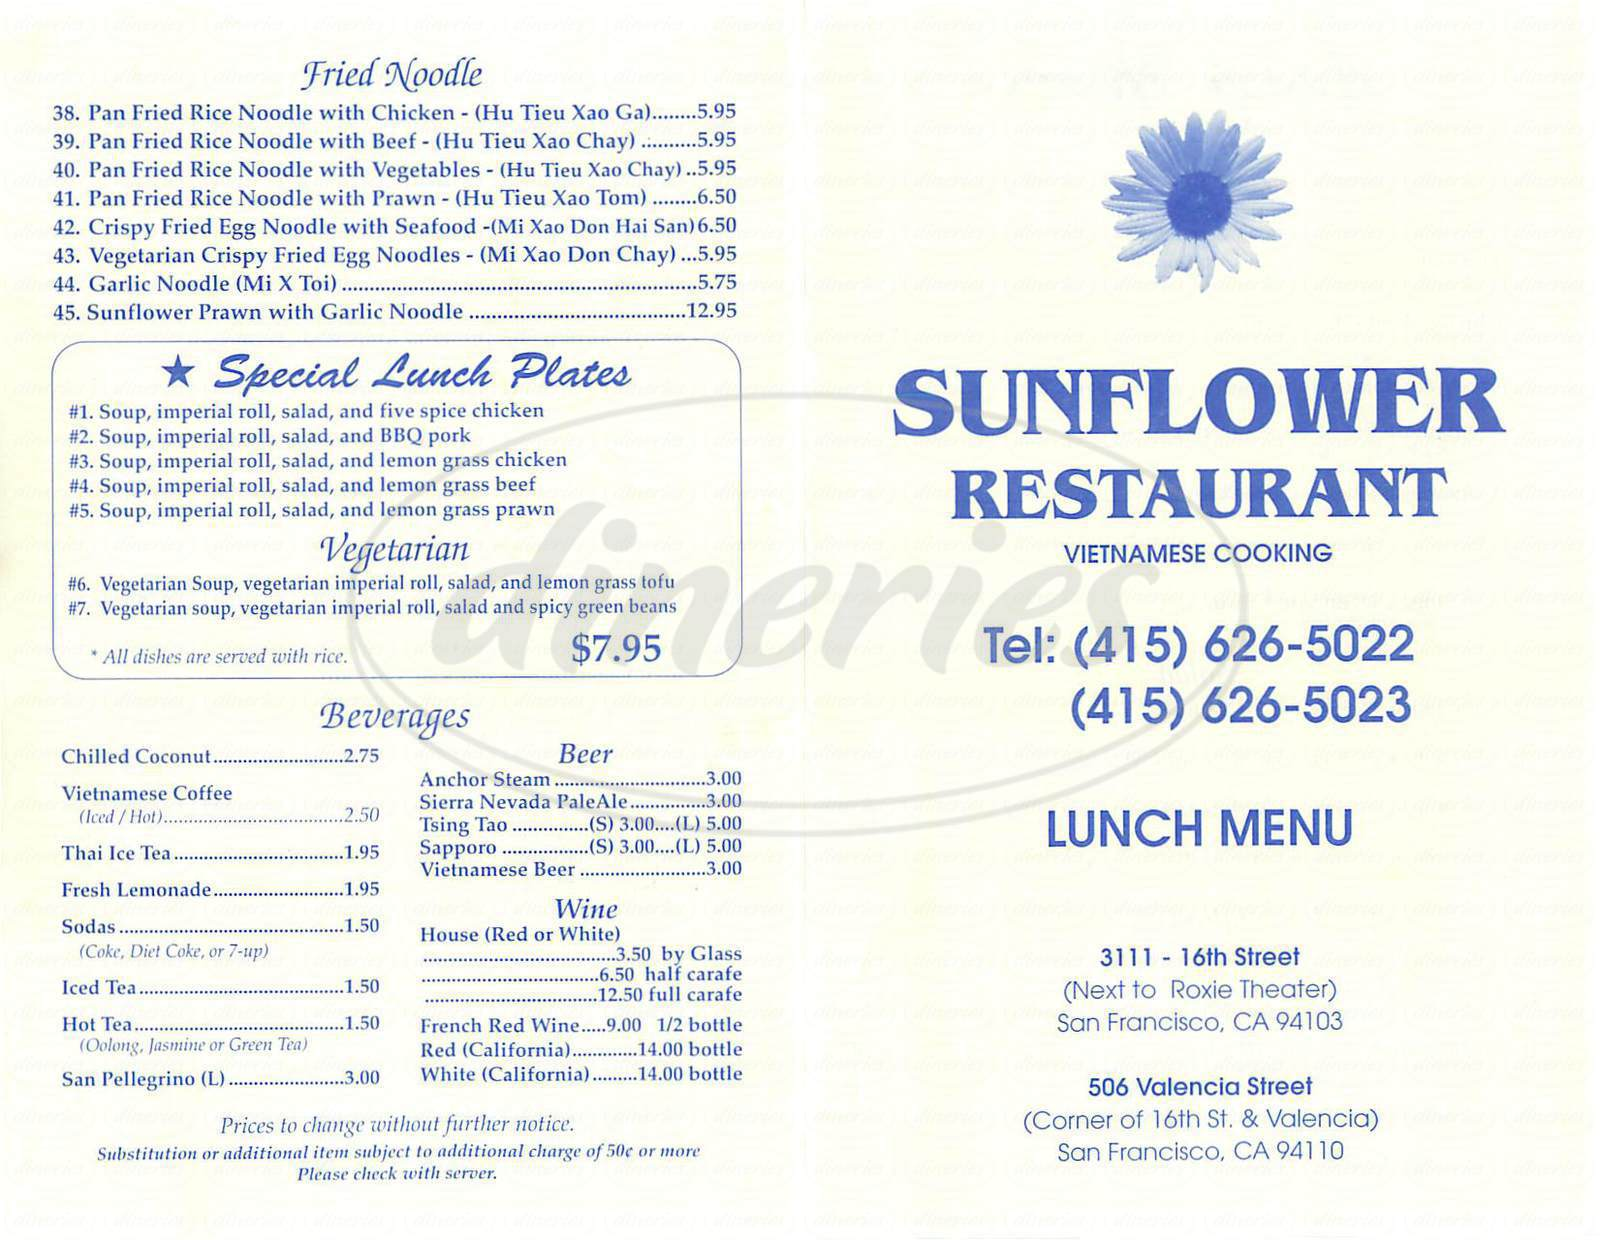 menu for Sunflower Restaurant